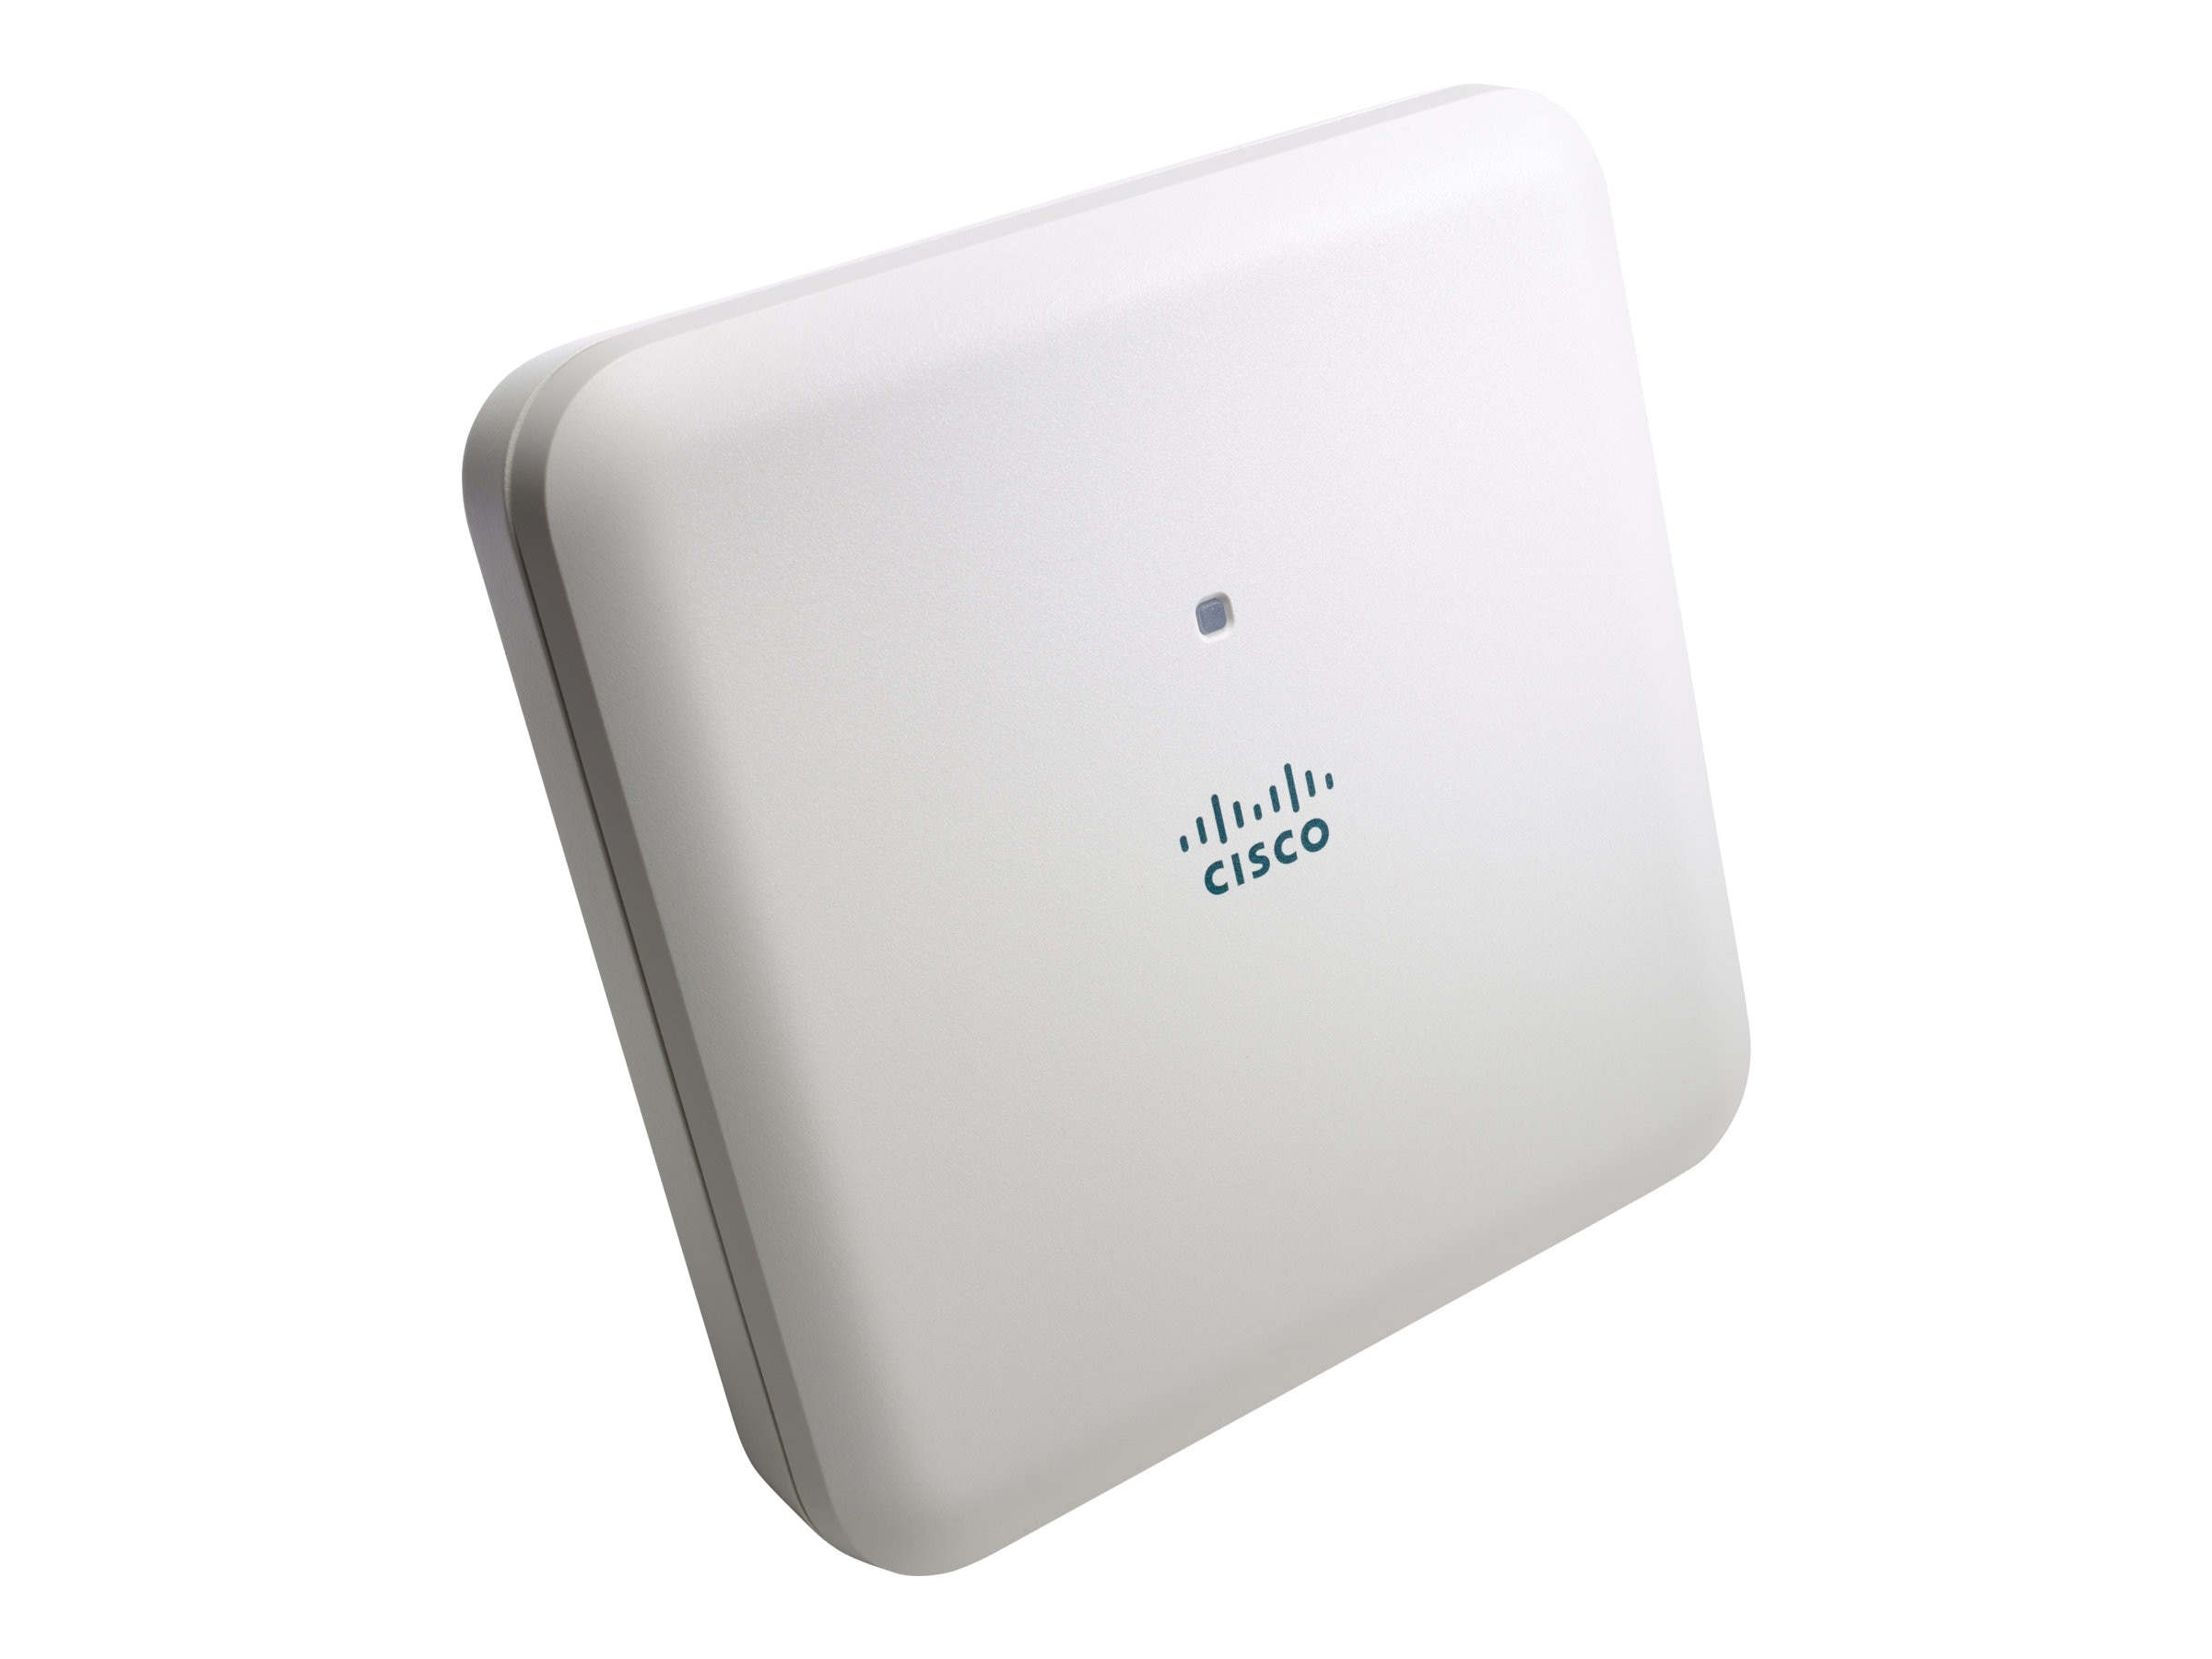 Cisco Aironet 1832i AP w 3x3:2SS, Int Ant, S Domain Configurable, AIR-AP1832I-S-K9C